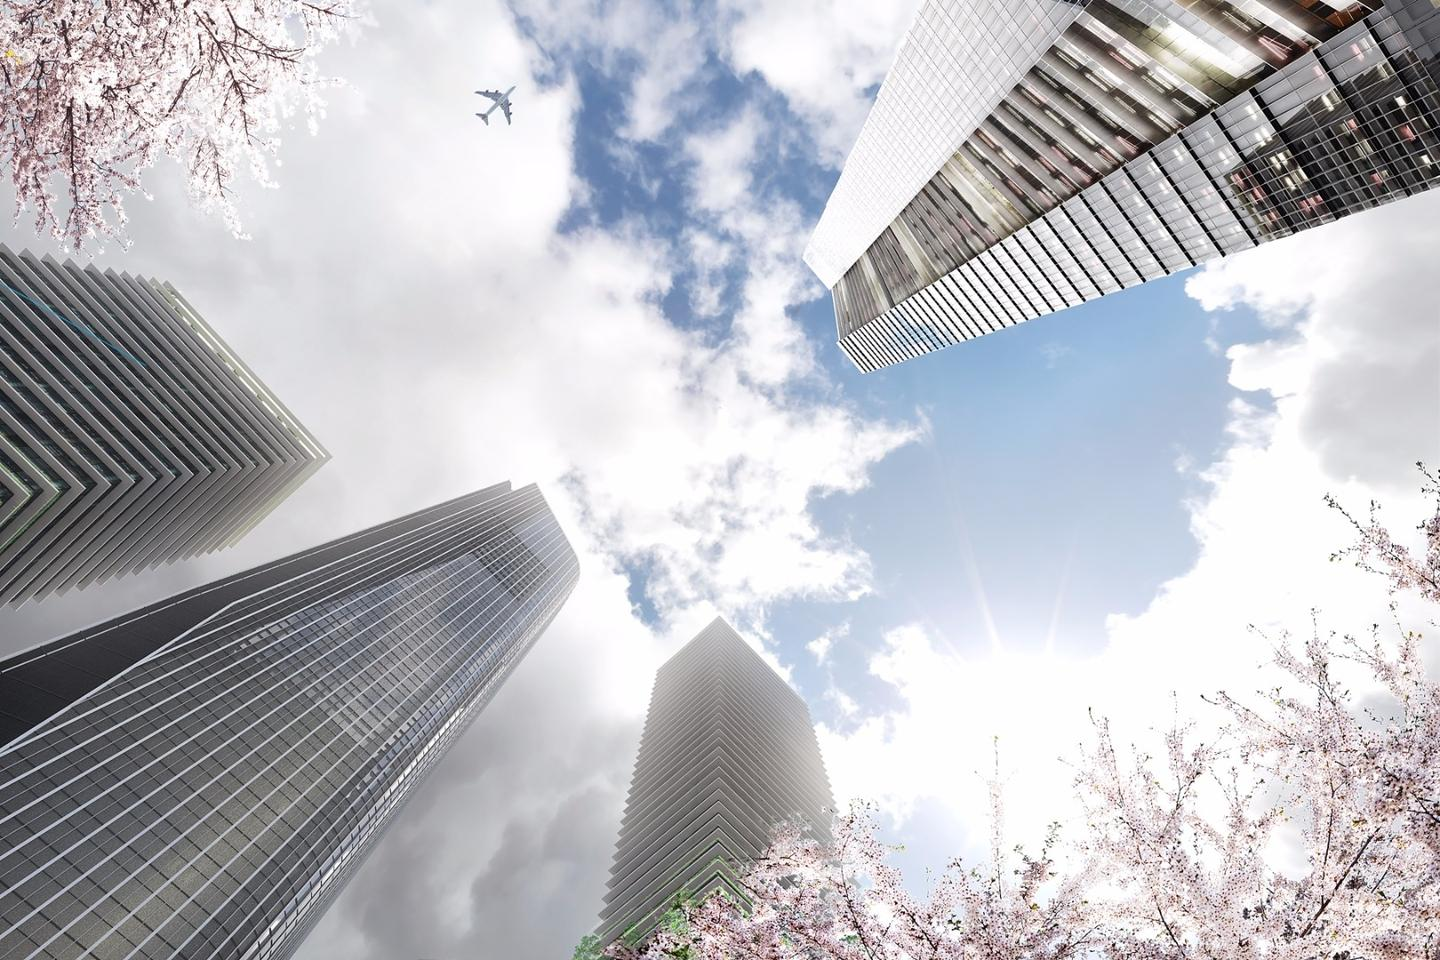 The Toranomon Hills Business Tower is designed by German architect Christoph Ingenhoven